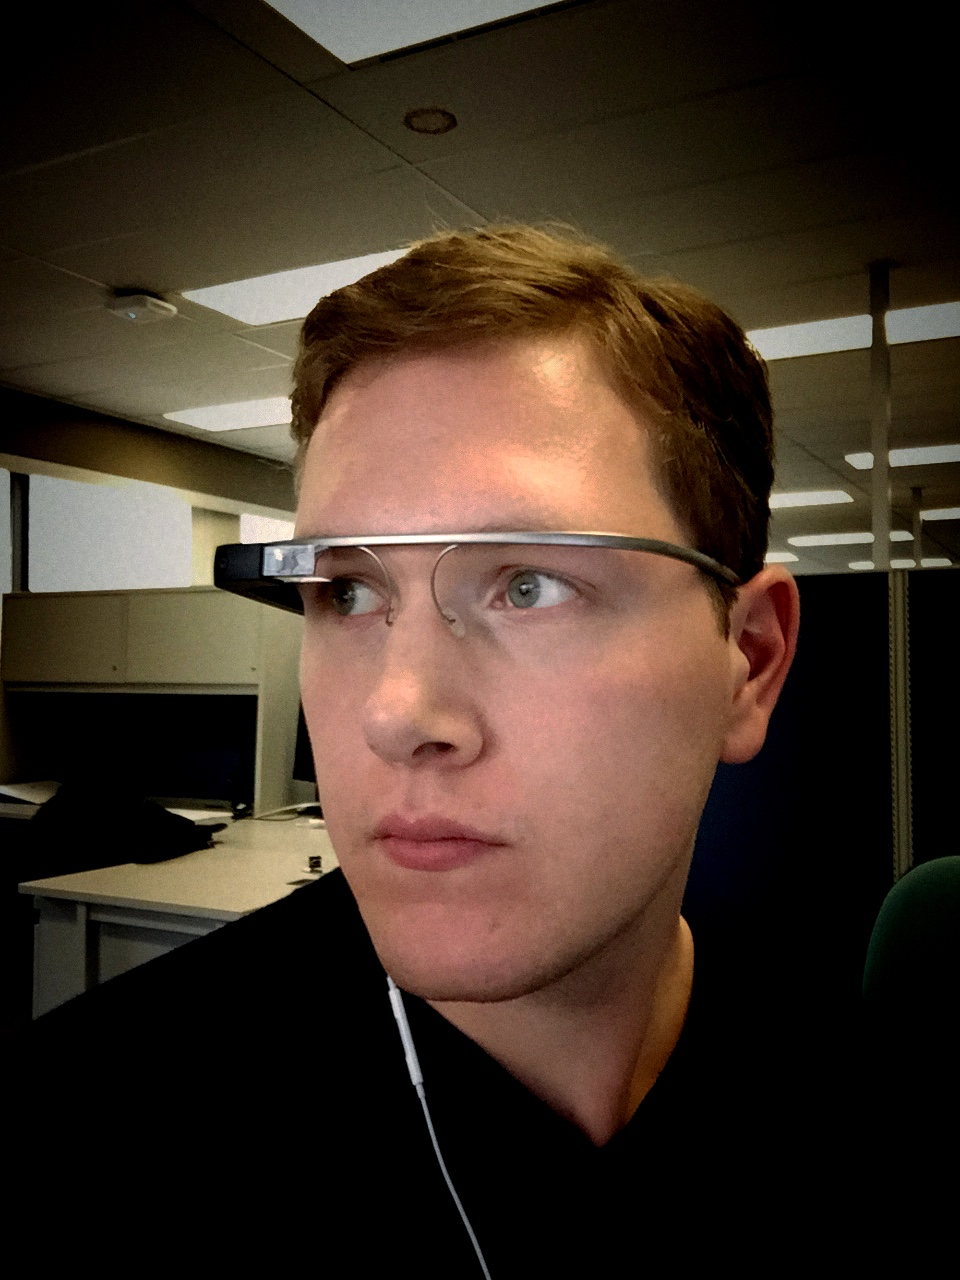 Selfie of me with Glass!